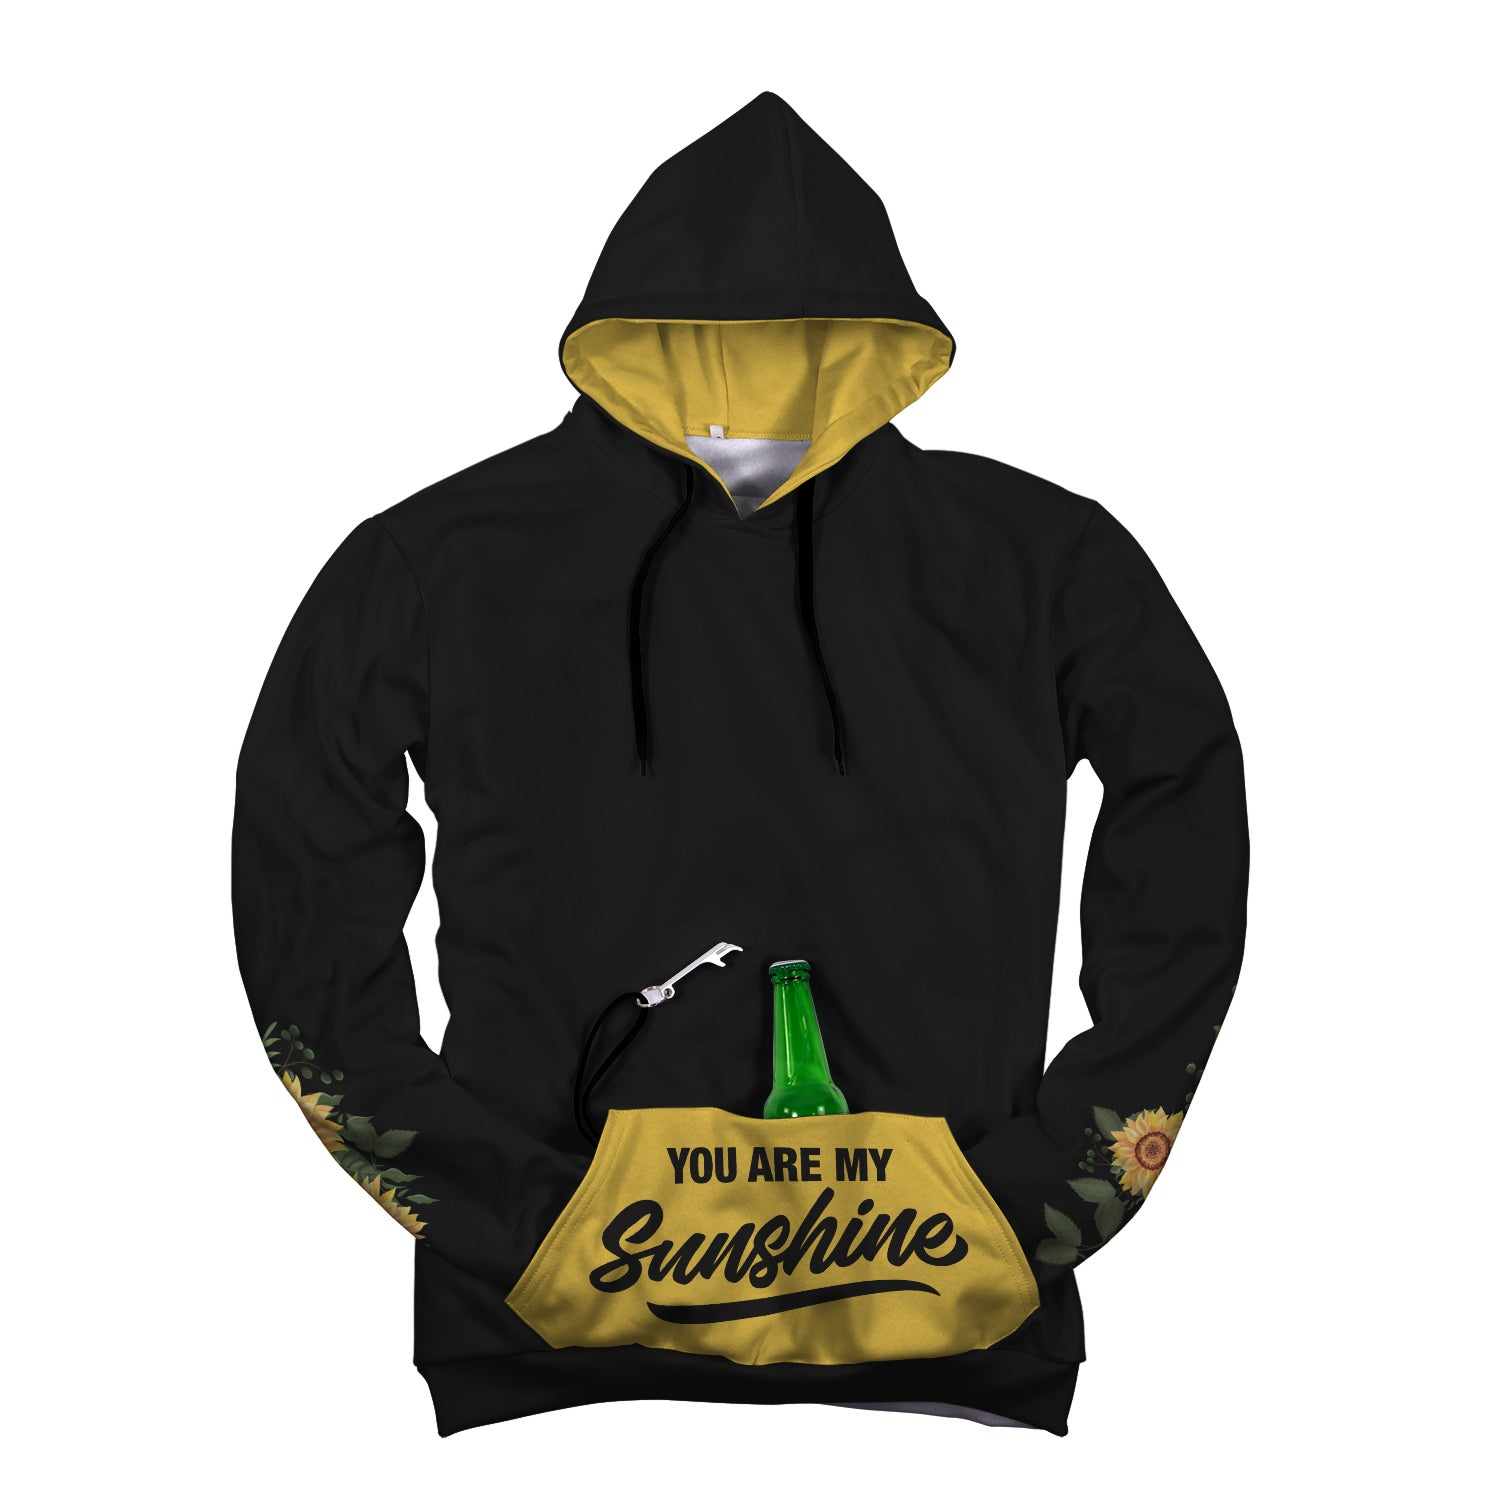 You Are My Sunshine Pop Top Hoodie. Sunshine in my pocket beer holder pop top hoodie in black and yellow with flowers